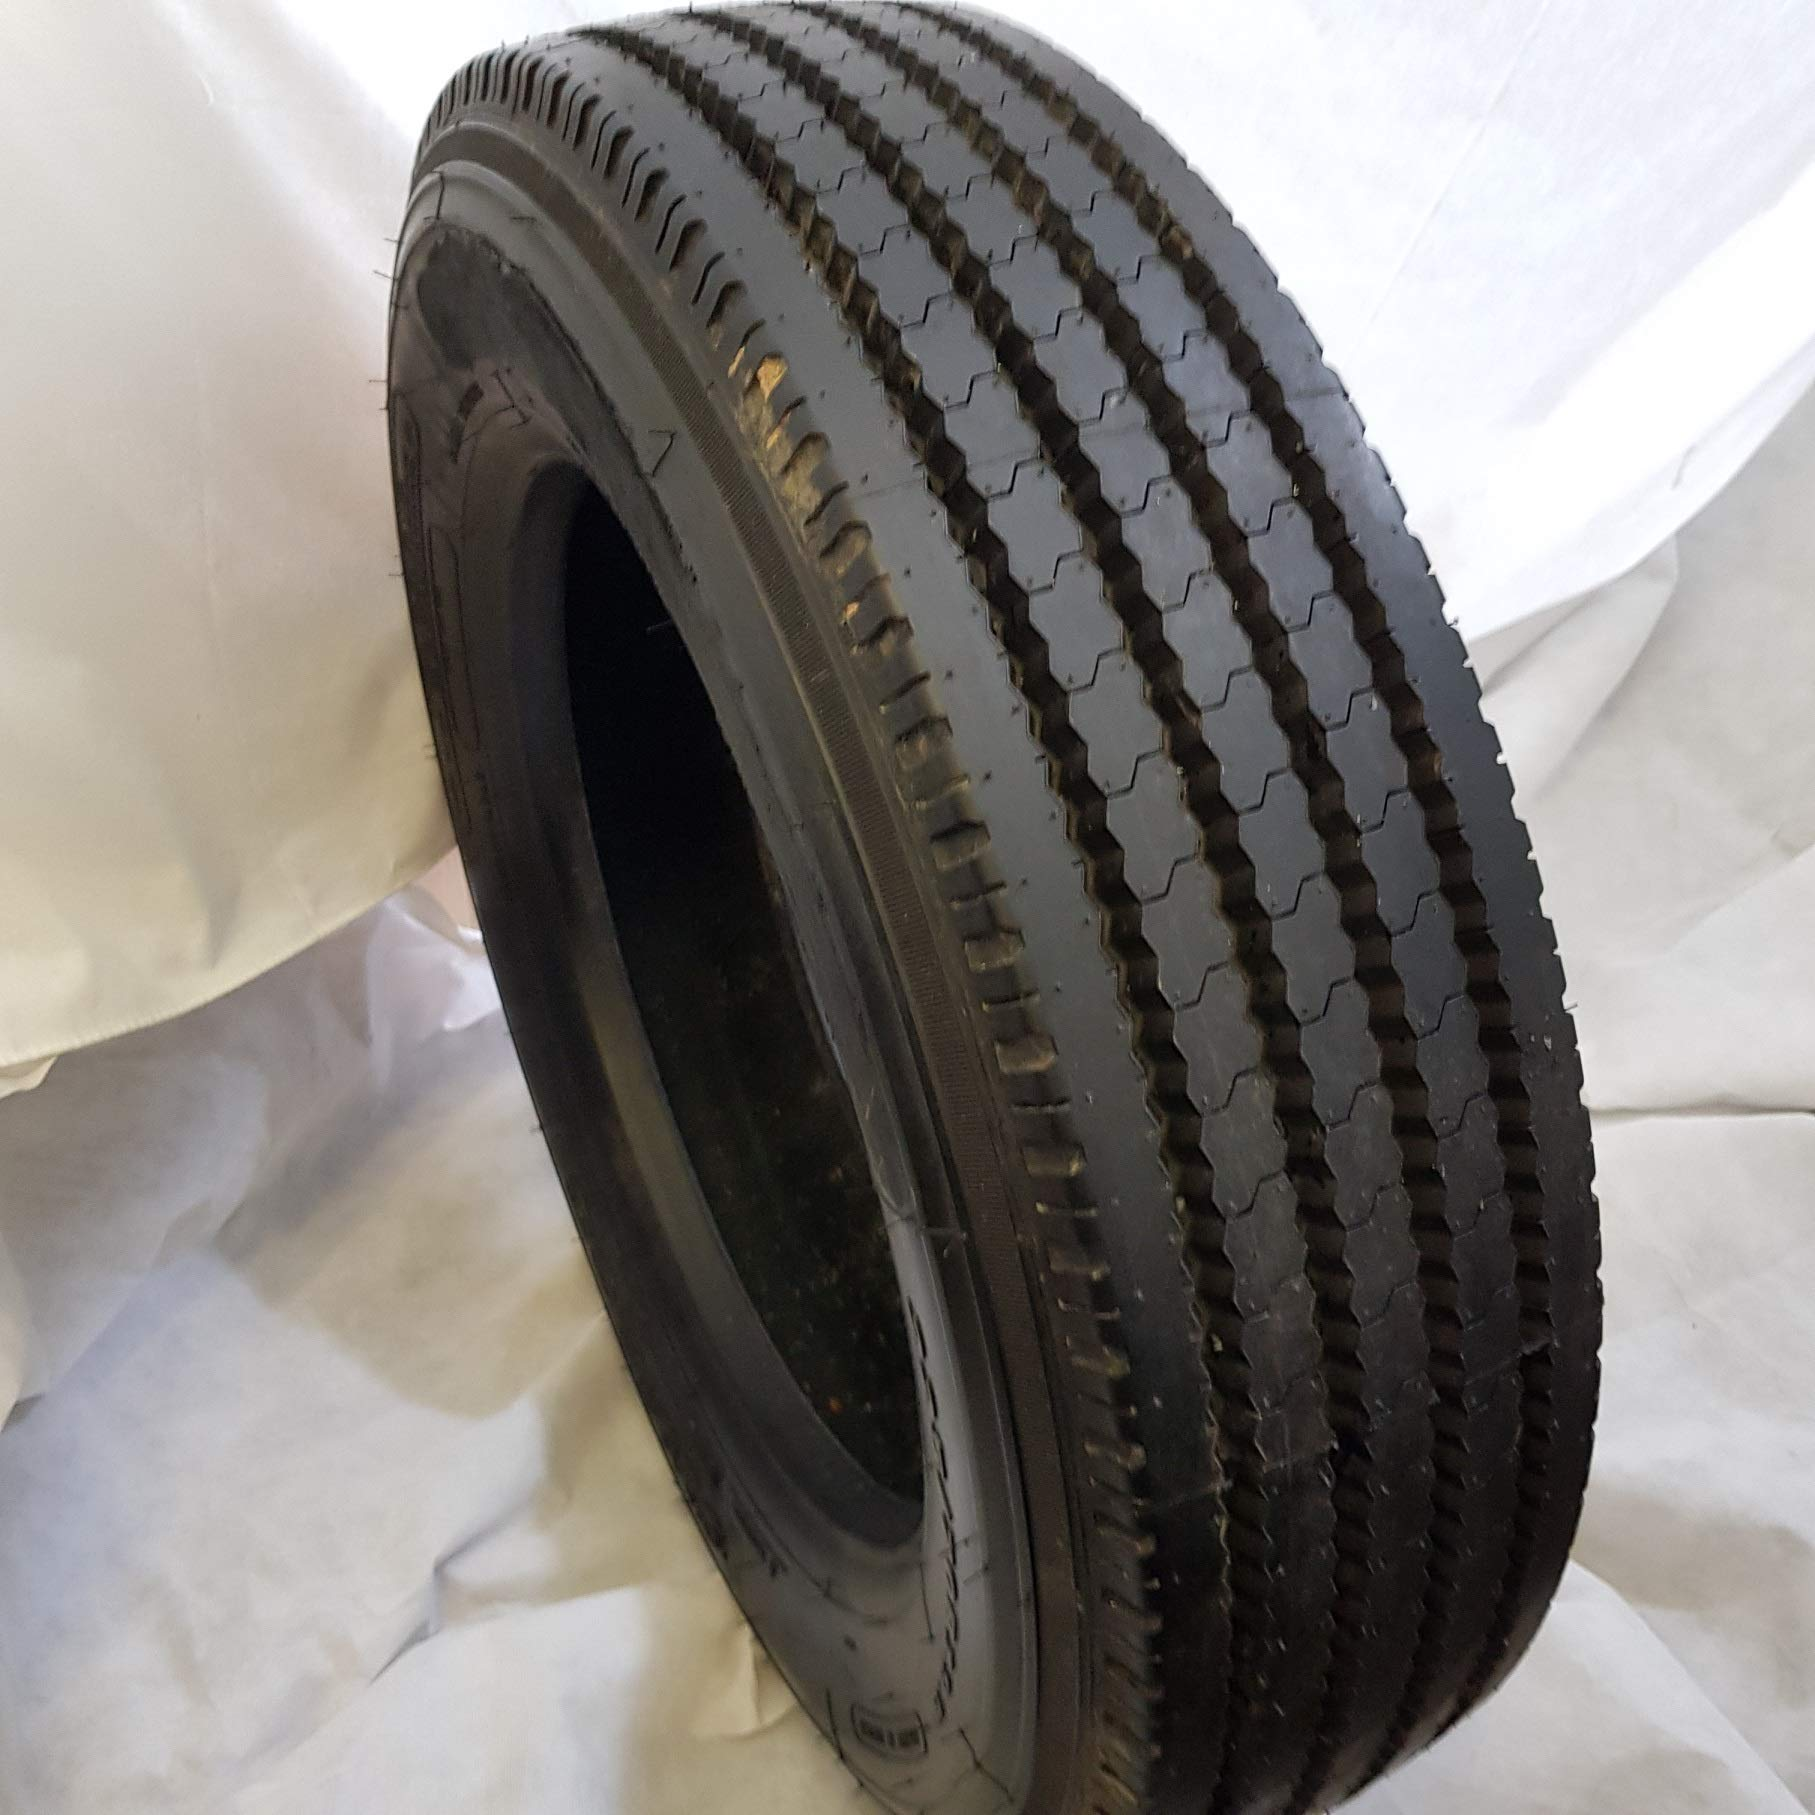 (1-TIRE) 225/70R19.5 ROAD WARRIOR # AW9 - F820 STEER ALL POSITIONS RADIAL TIRE 14 PLY 128/126M HEAVY DUTY 22570195